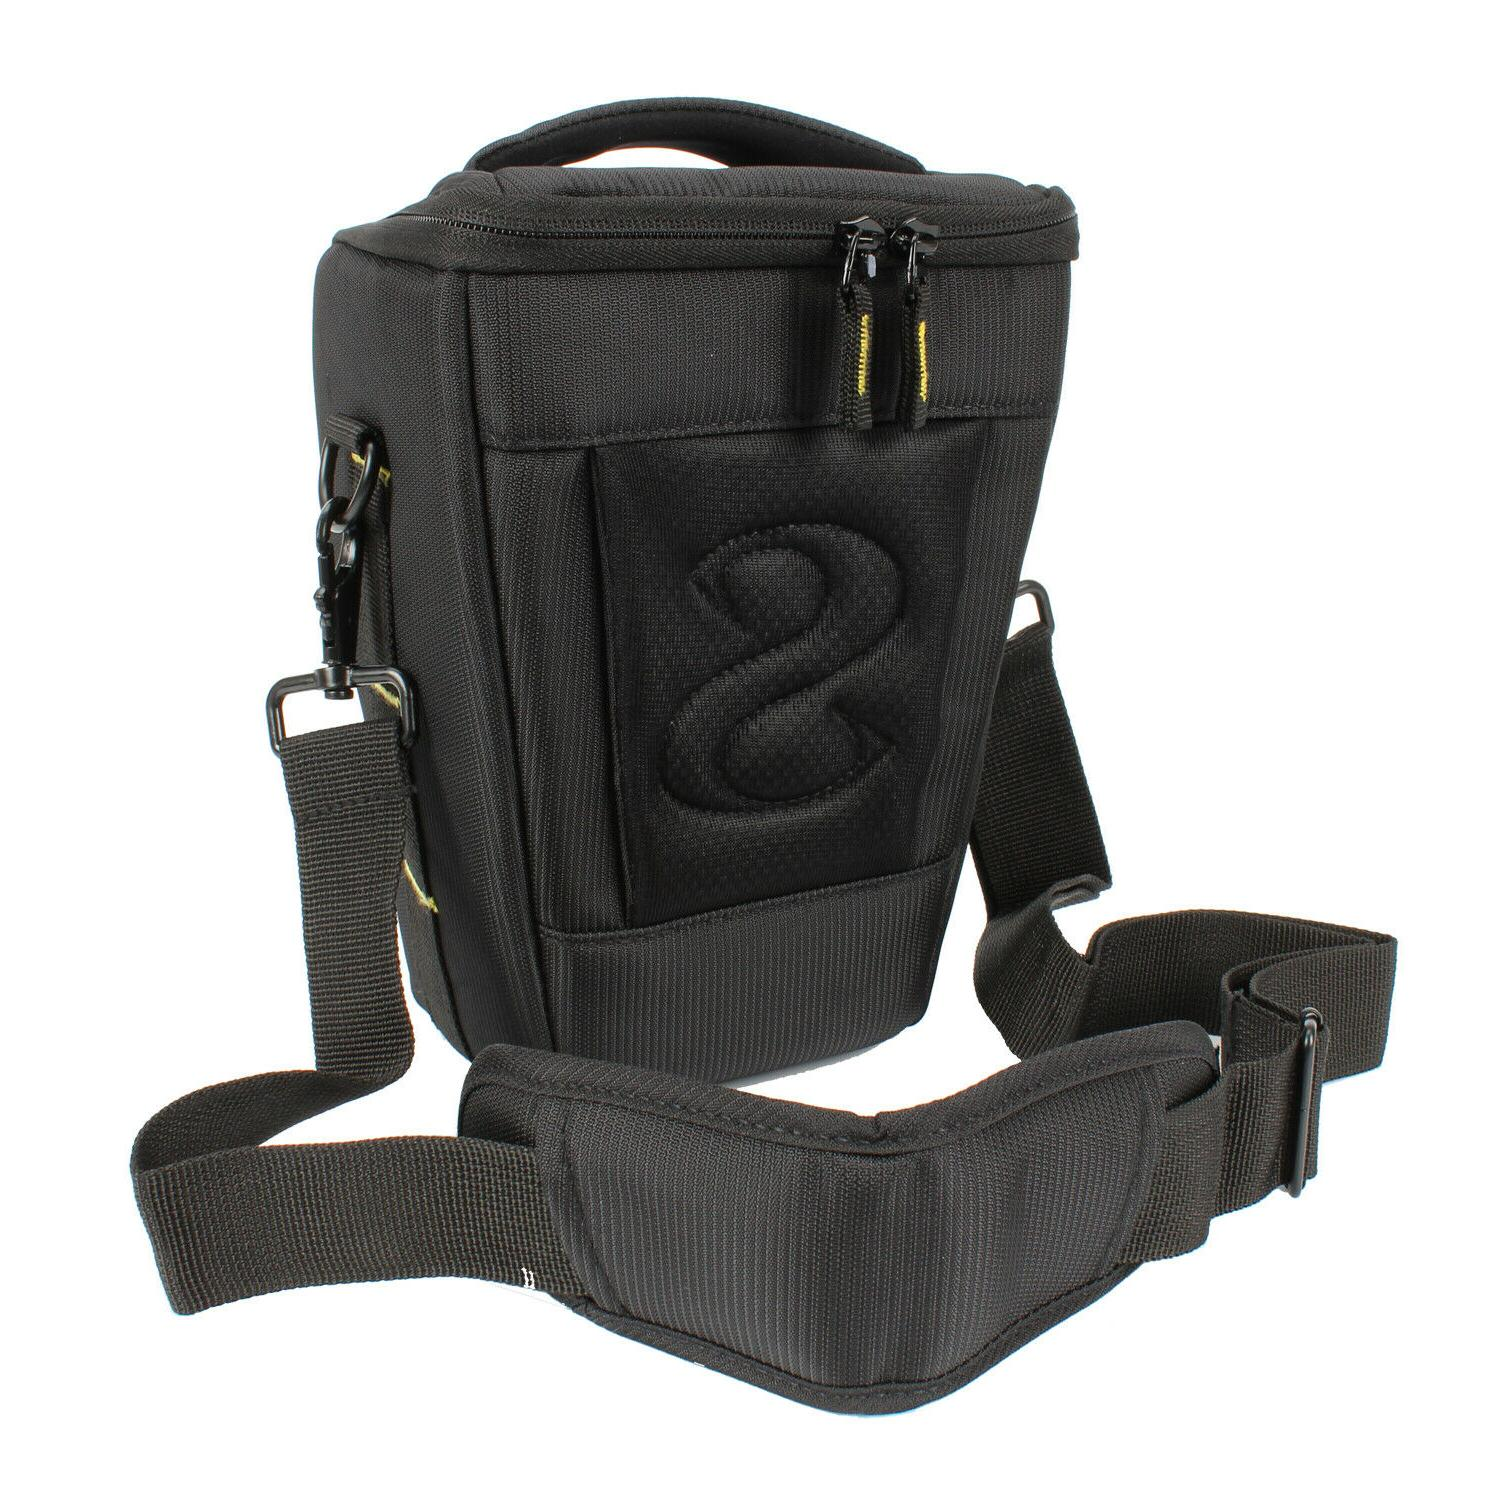 Top-Load Holster Bag SLR Shoulder Waist